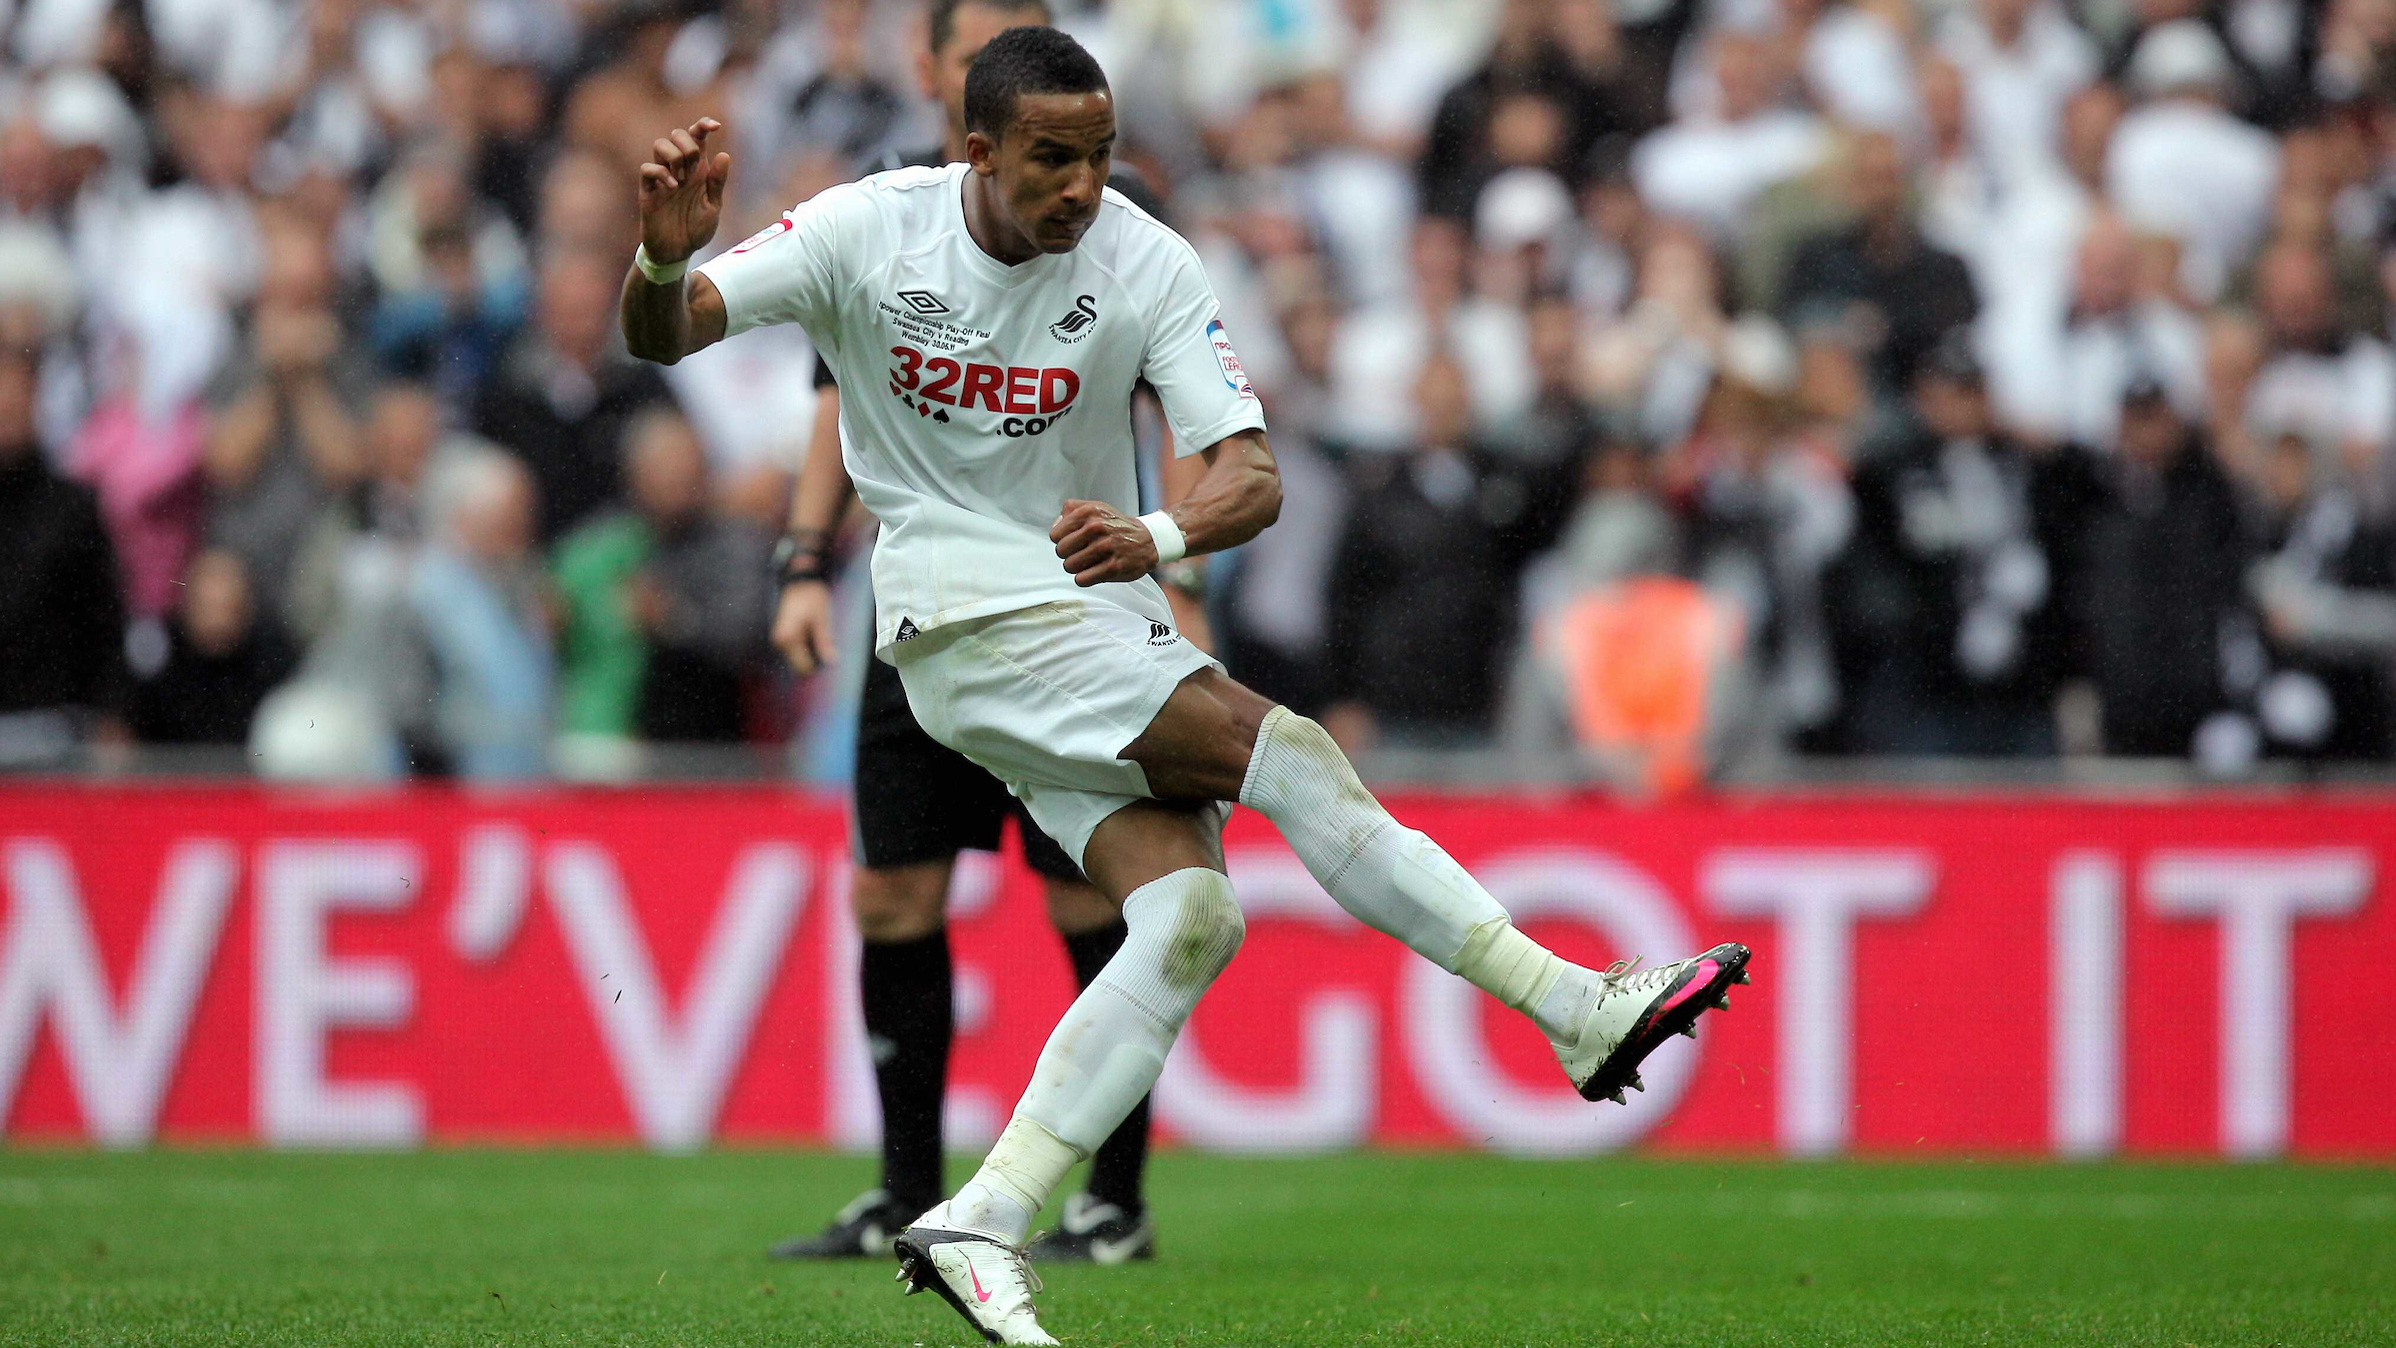 Play-off final Scott Sinclair